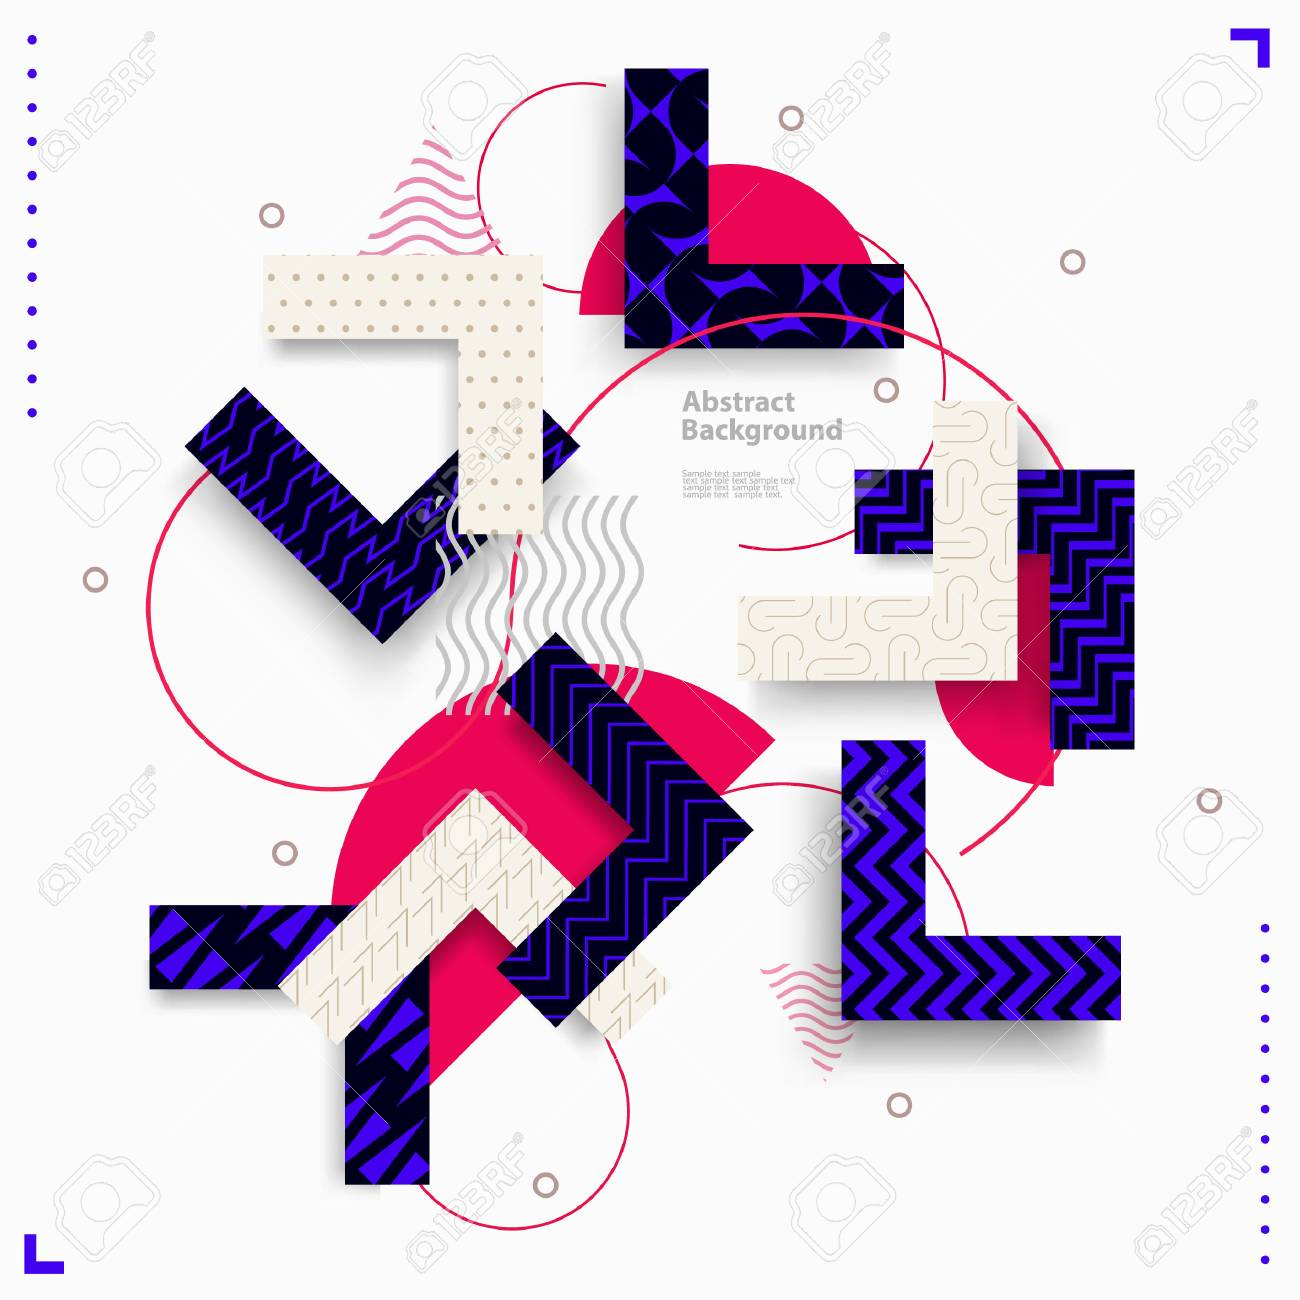 Abstract geometric composition - 79398447